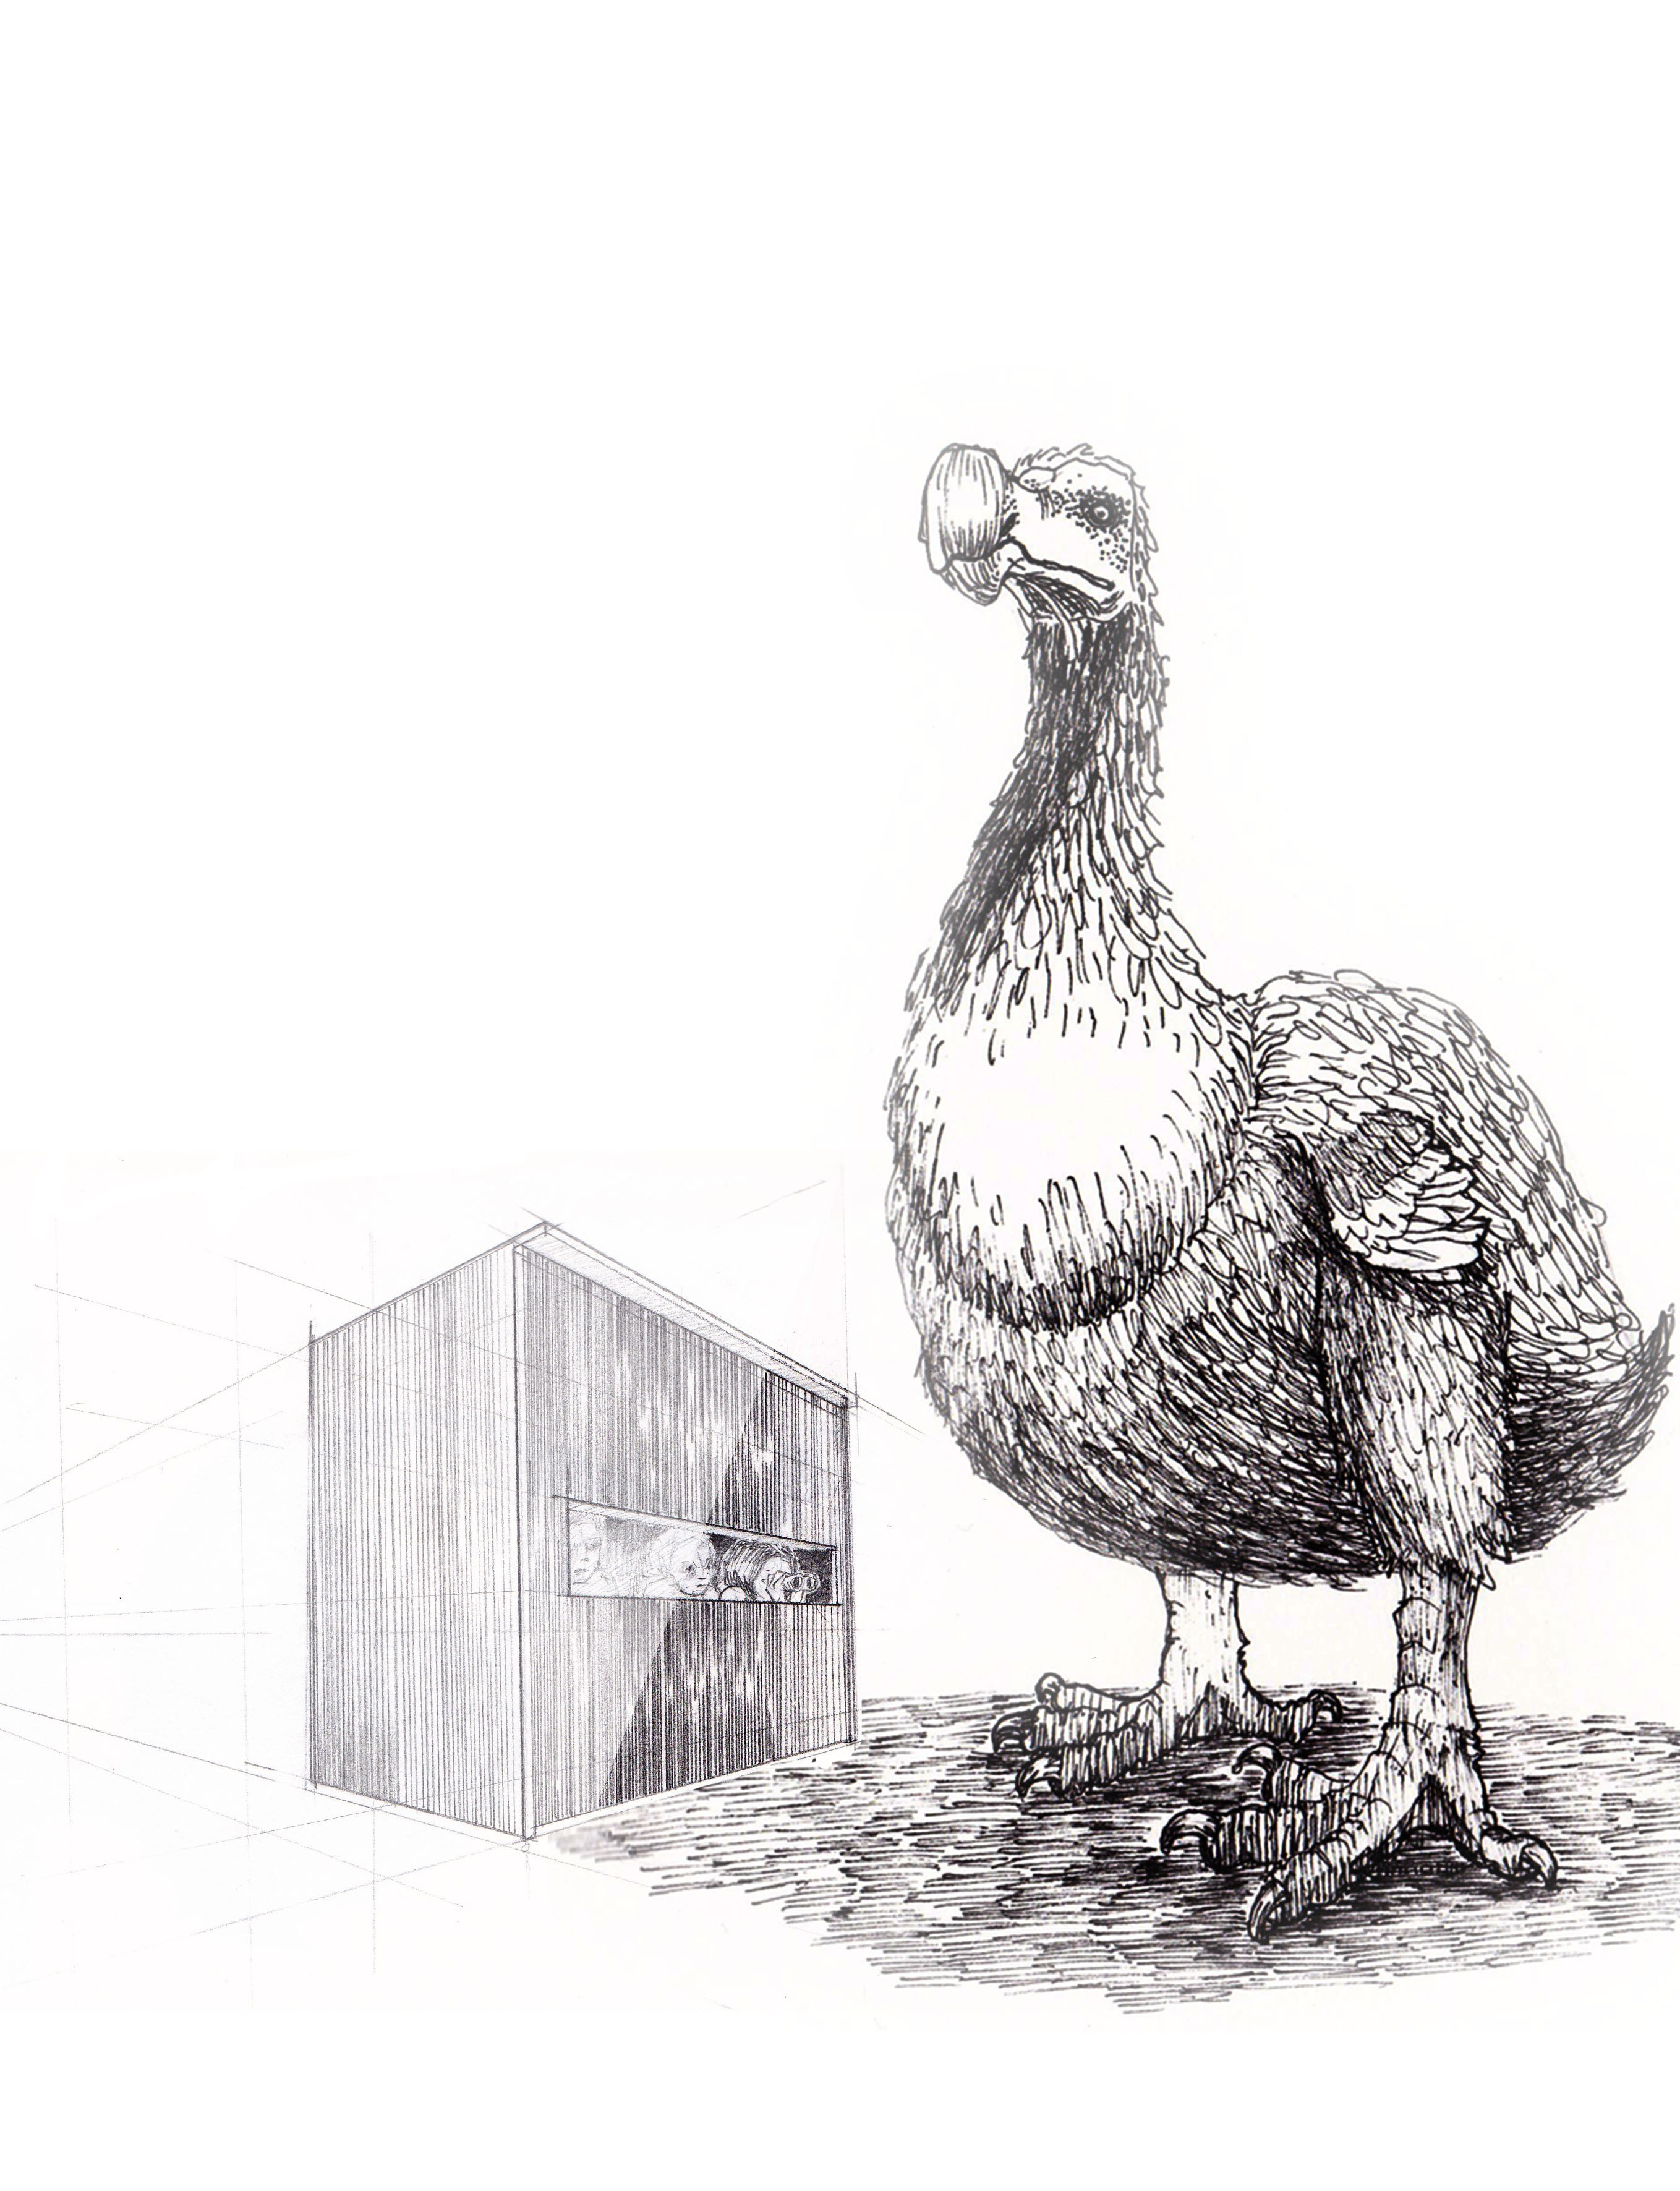 Dodo and the shed